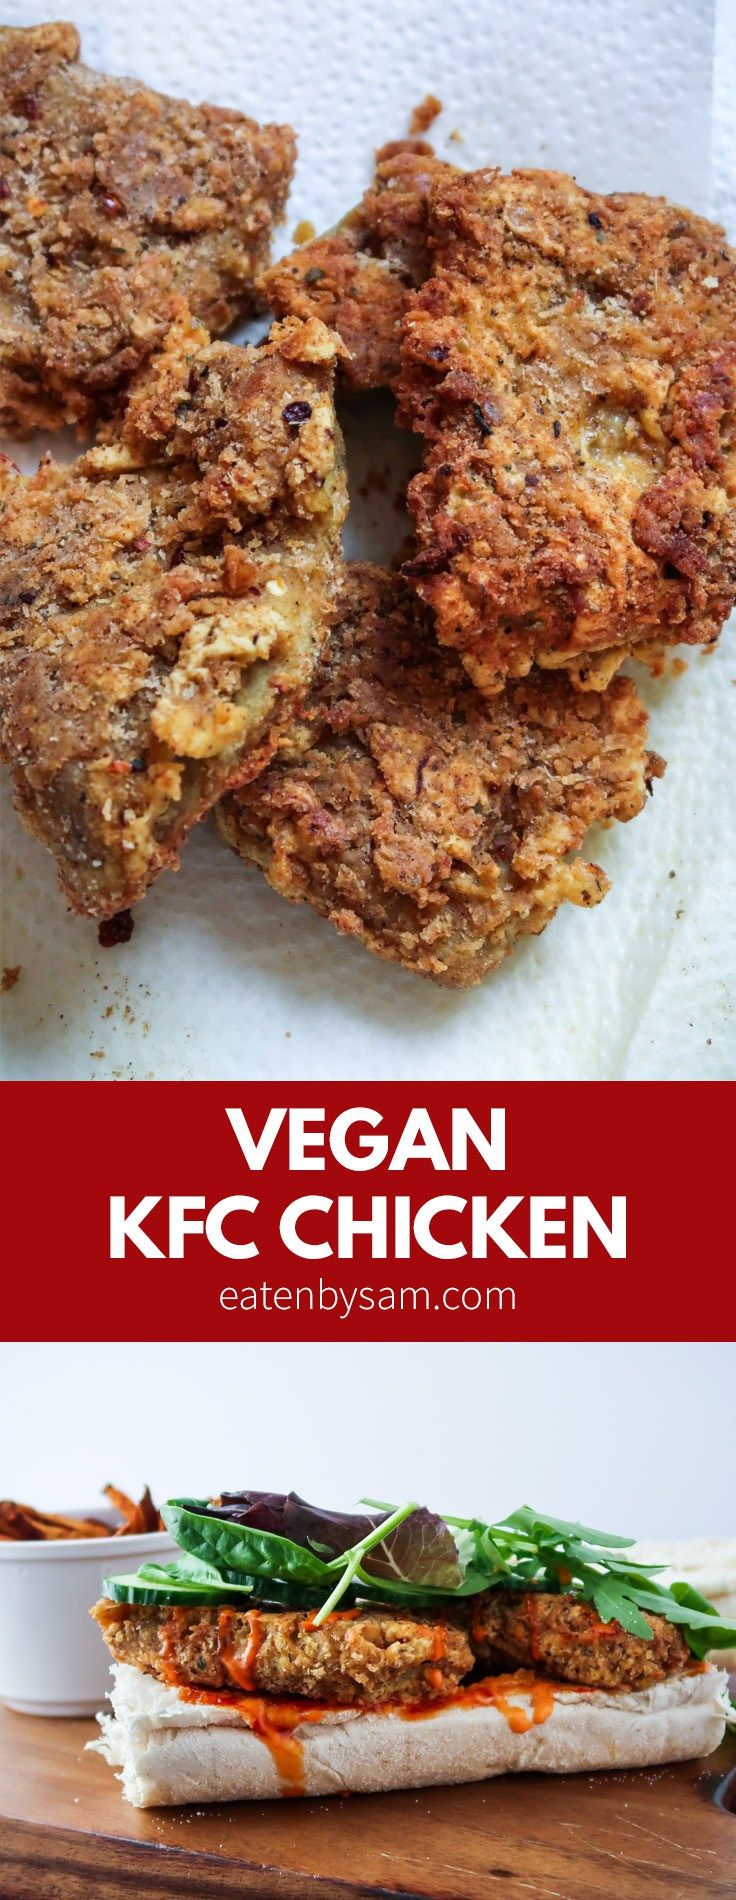 Vegan KFC Chicken Recipe